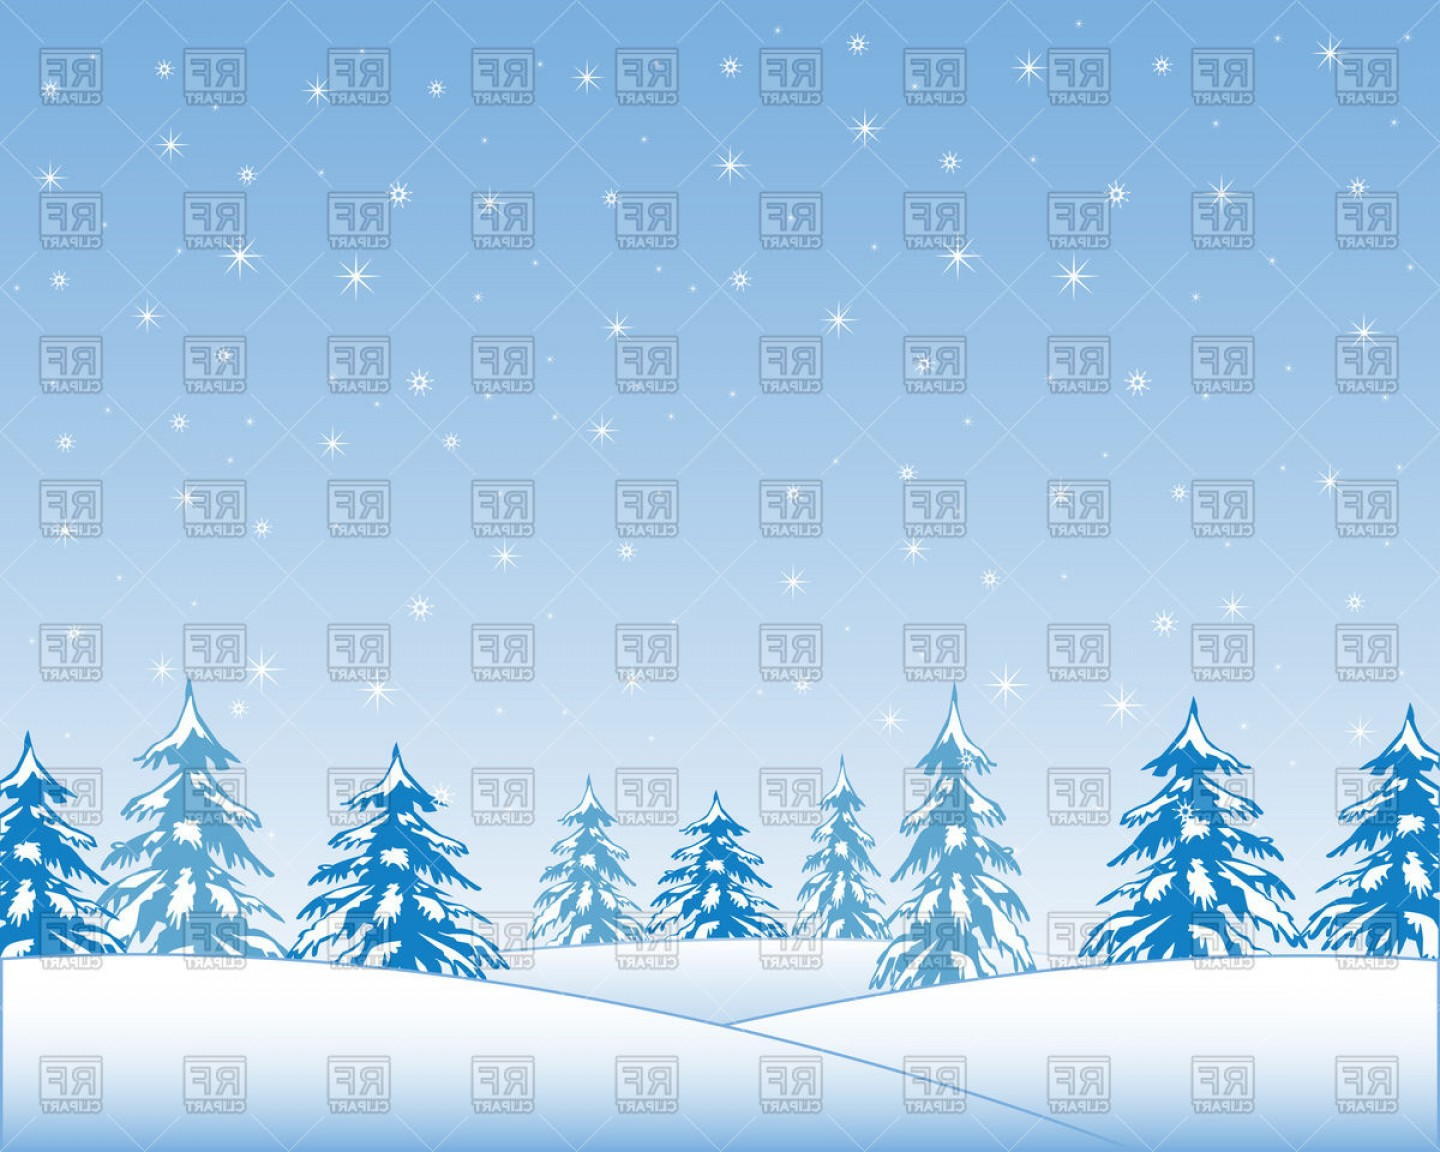 Wood landscaping clipart clipart freeuse library Landscape With Winter Wood And Snow Vector Clipart | Savoyuptown clipart freeuse library